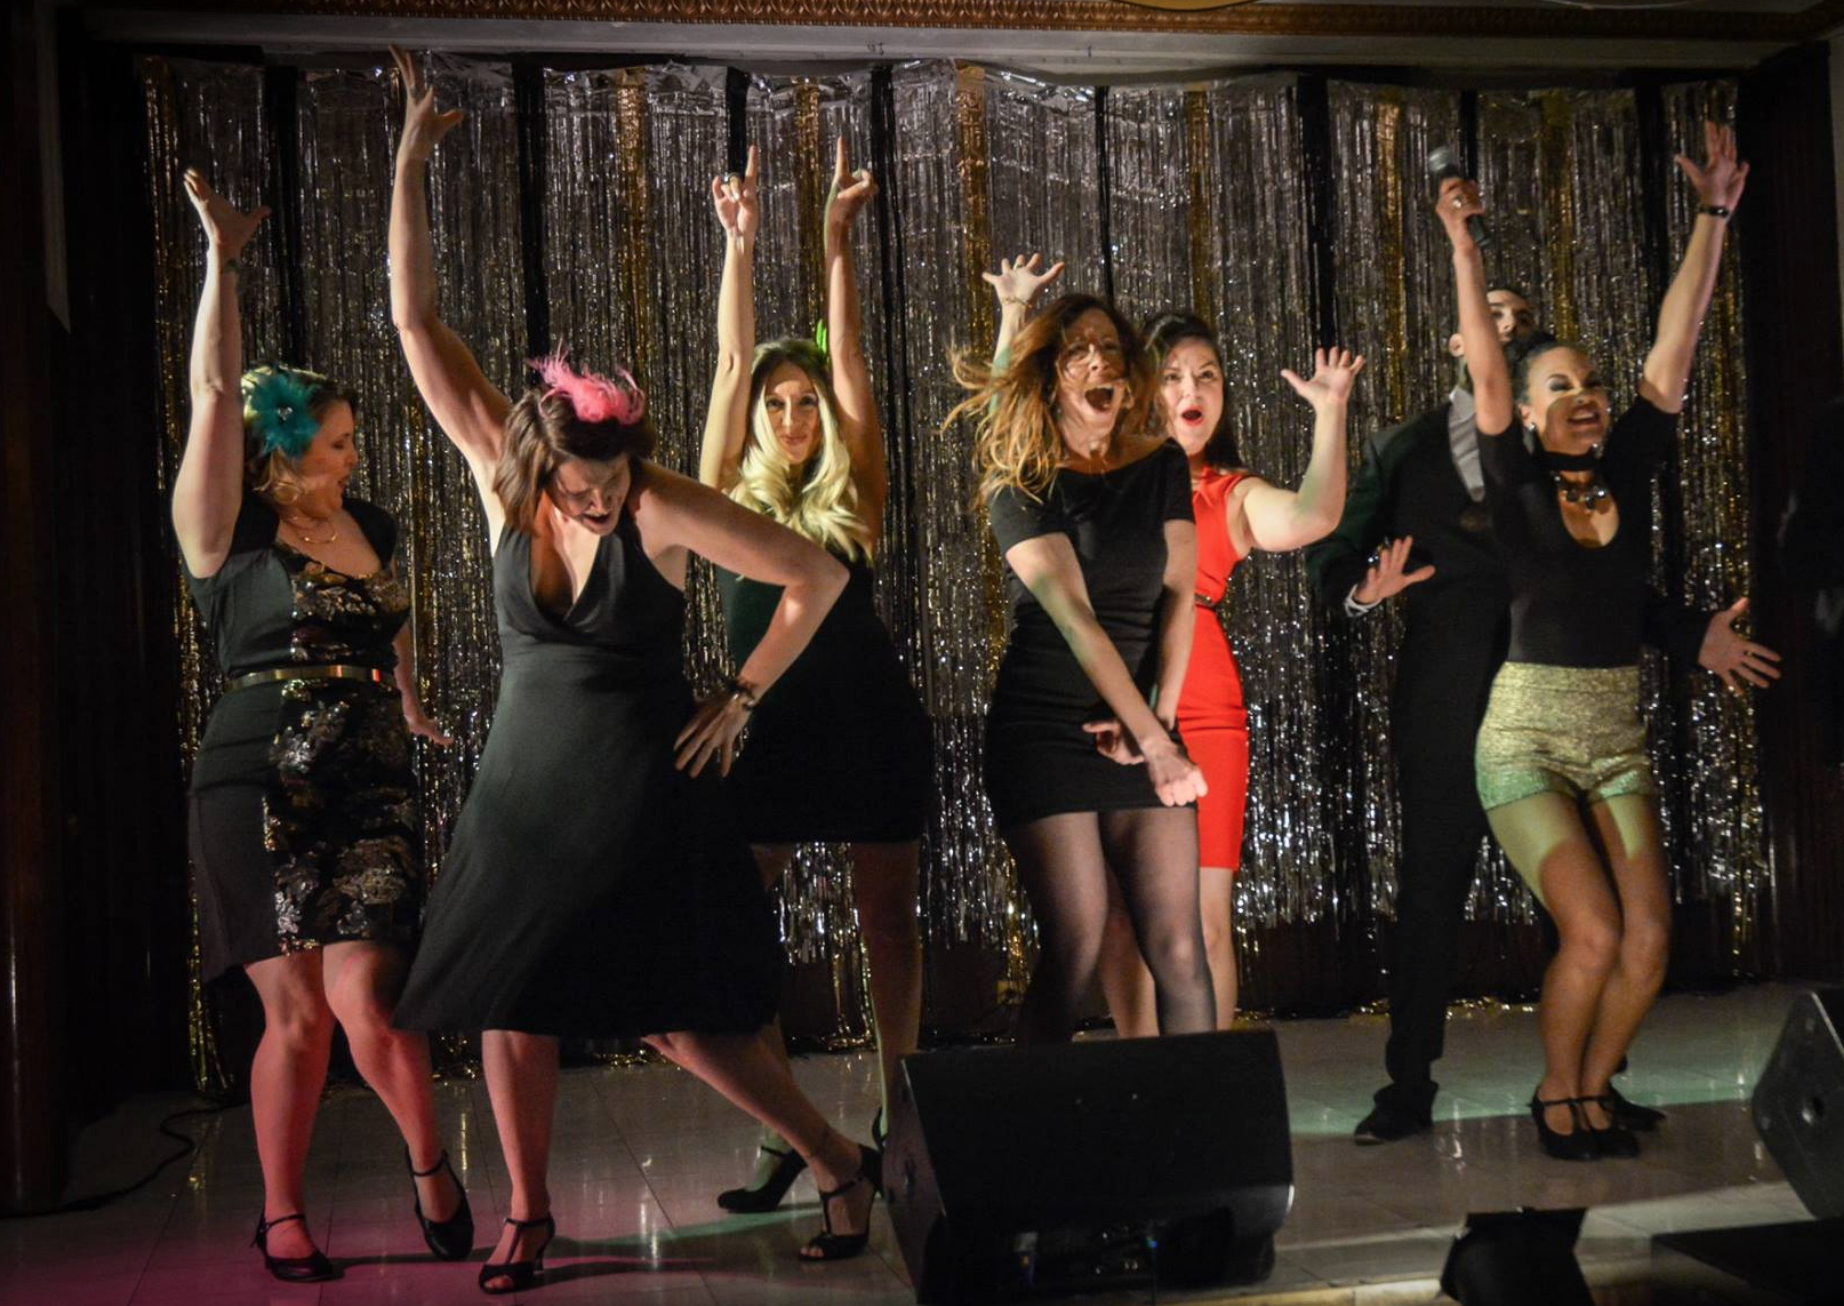 Great action shot of the opening number for Spring Forward Benefit 2017: Ravenswood Goes Retro. Director: Tamara Drew, Choreographer: Heather Kroski, Photo by Manuel Ortiz